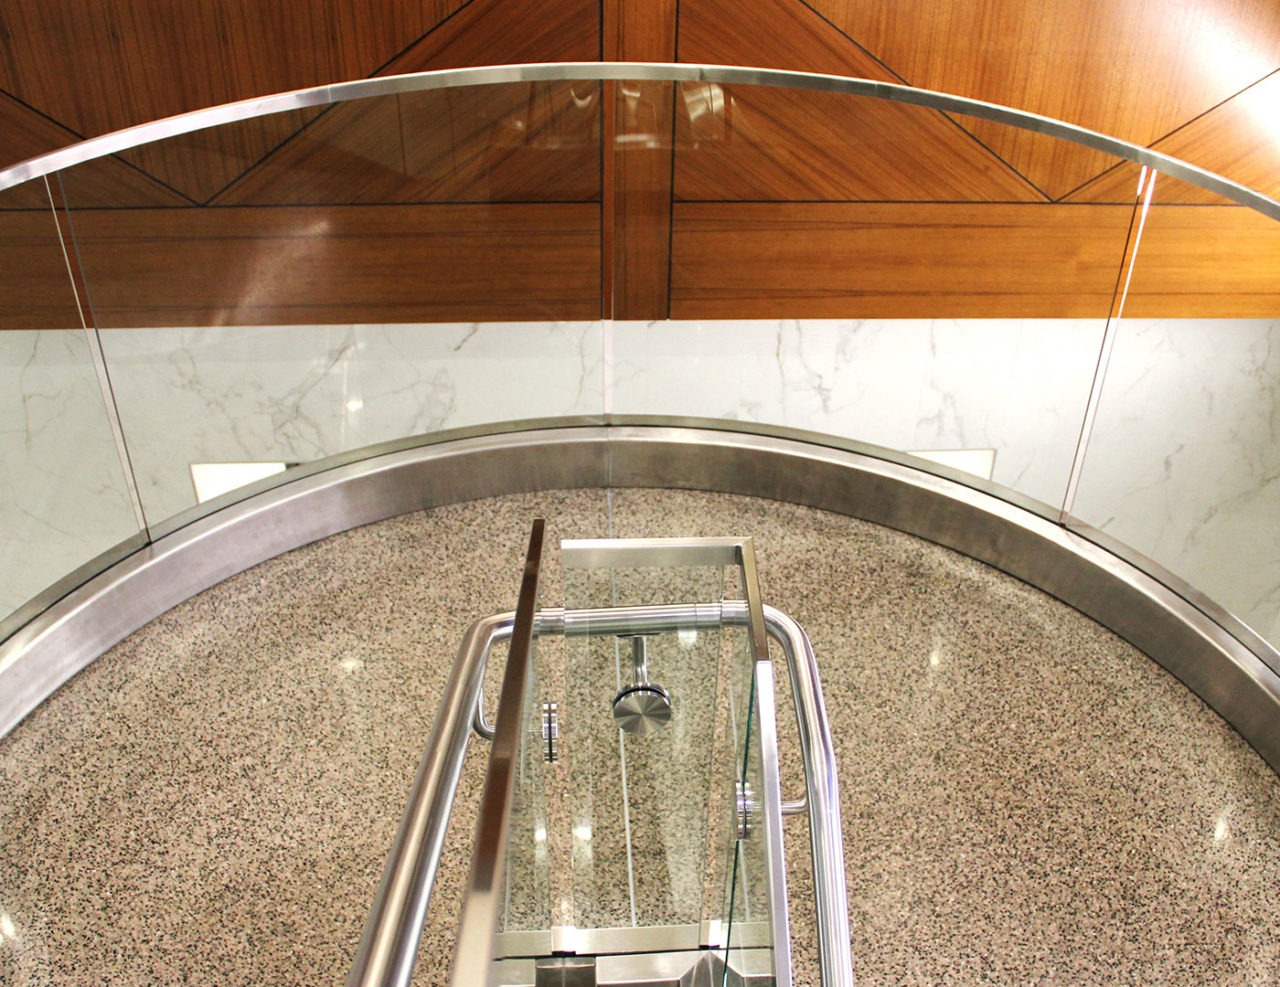 The glass railing on this curved landing required rolled aluminum base shoe, cladding, top cap and glass to achieve the desired tight radius.